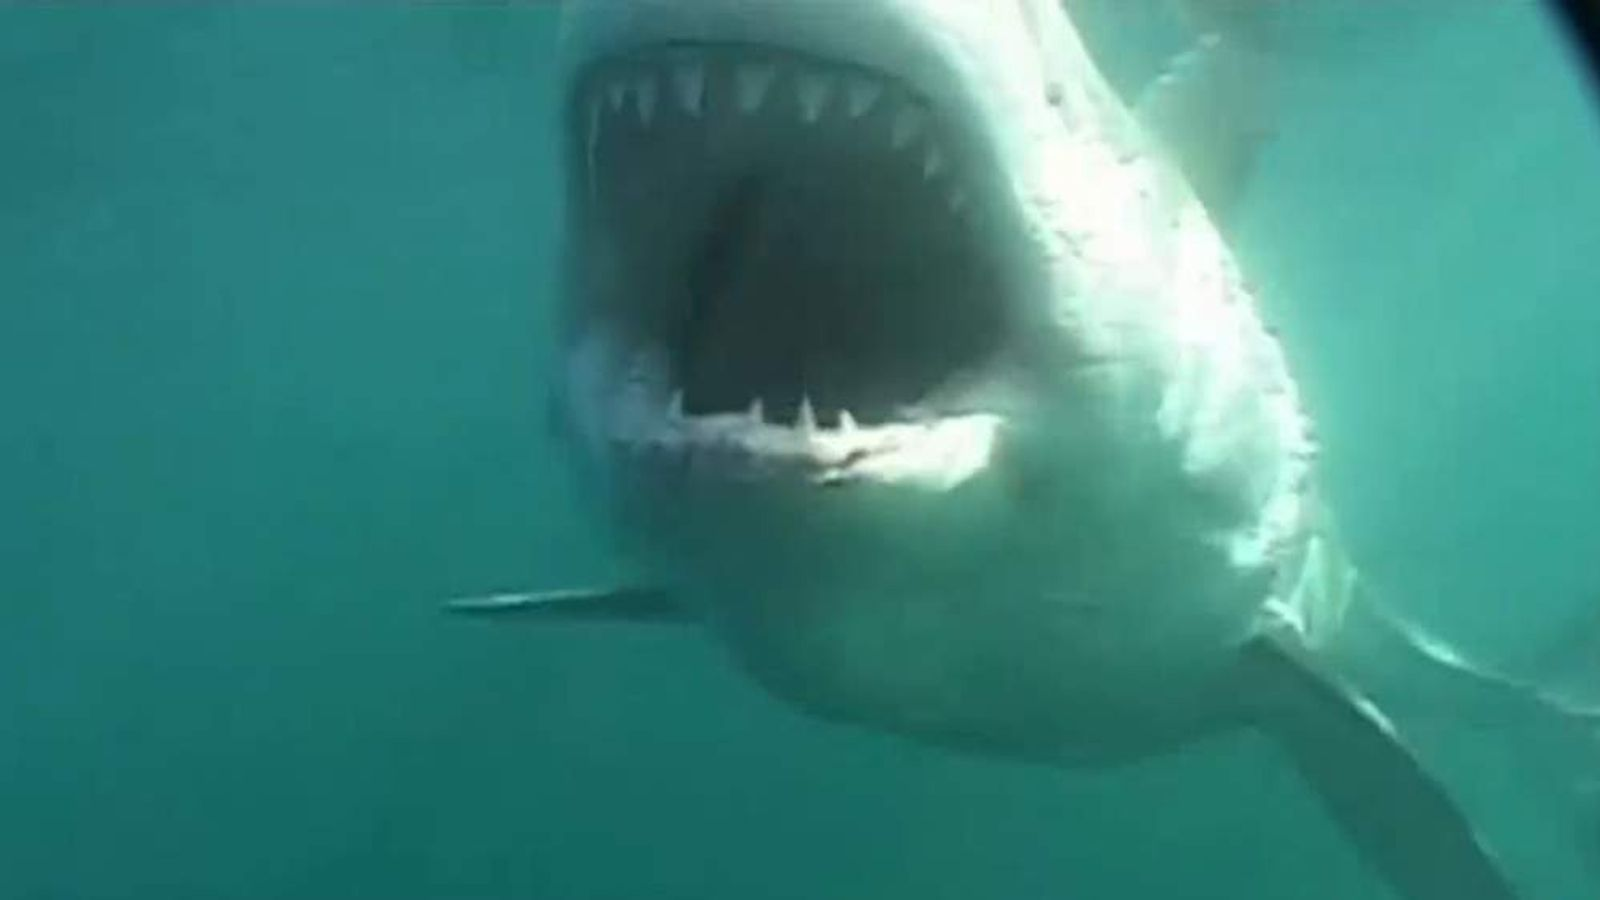 New technology being developed to prevent fatal shark attacks